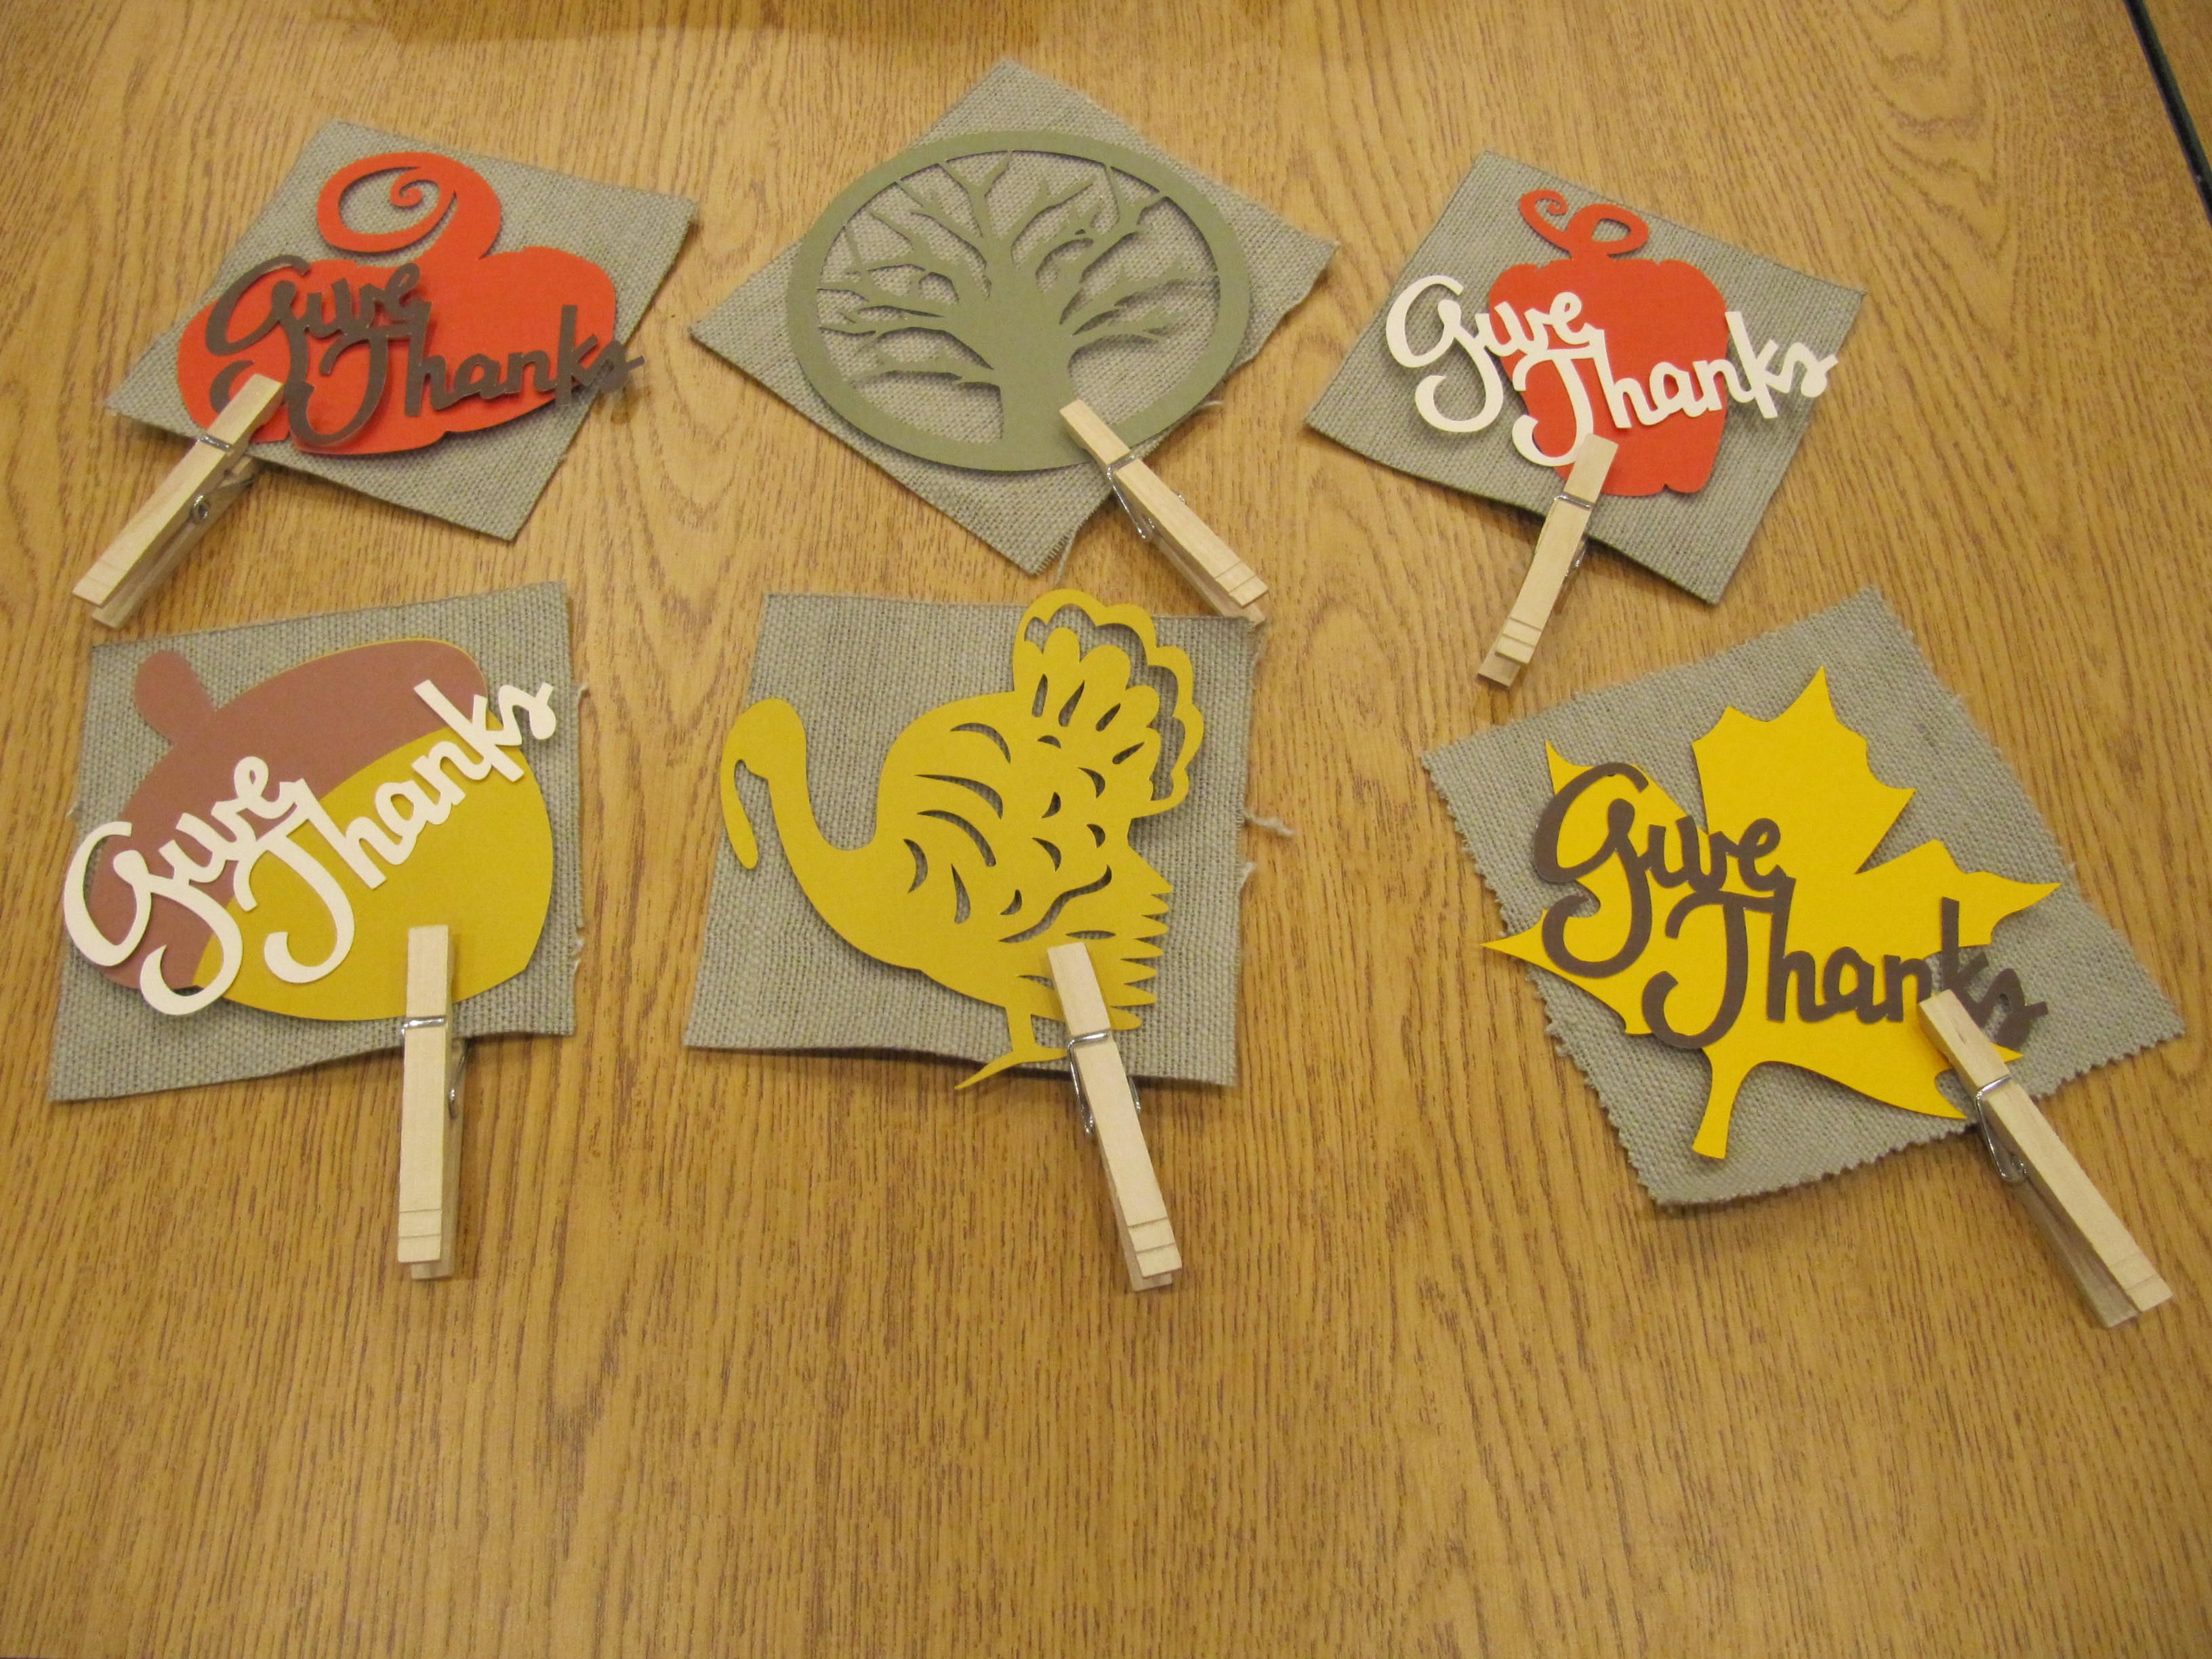 Thanksgiving Place cards made with a Die Cutter